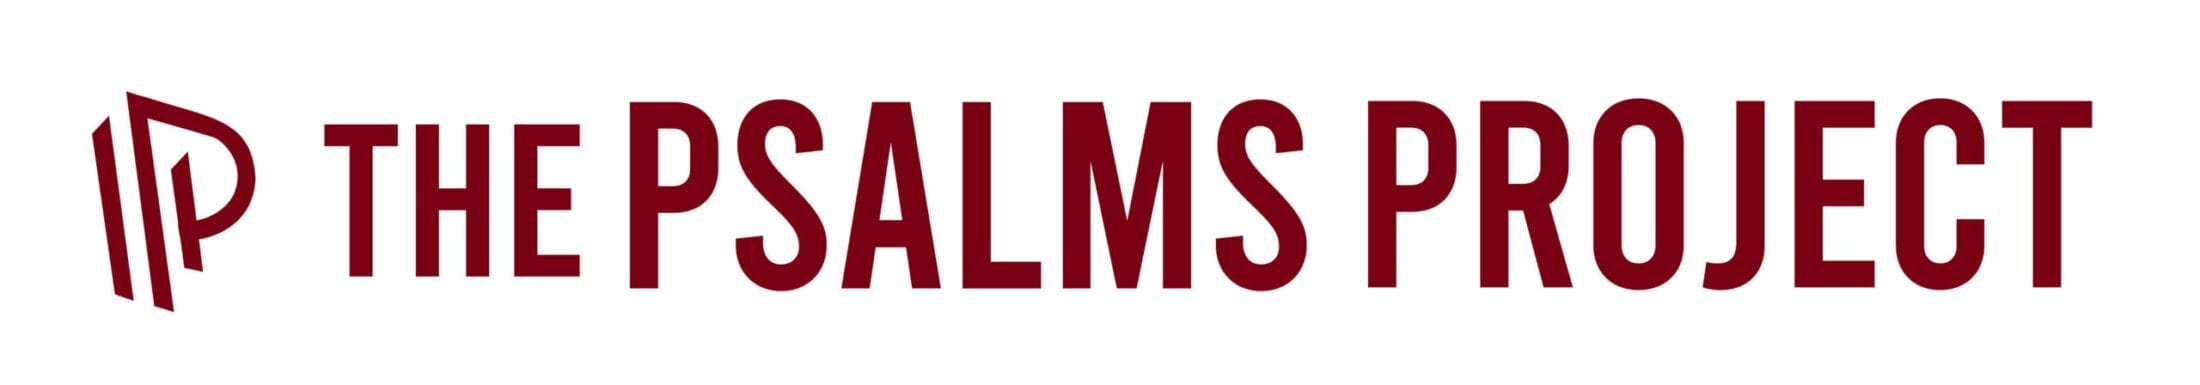 The Psalms Project